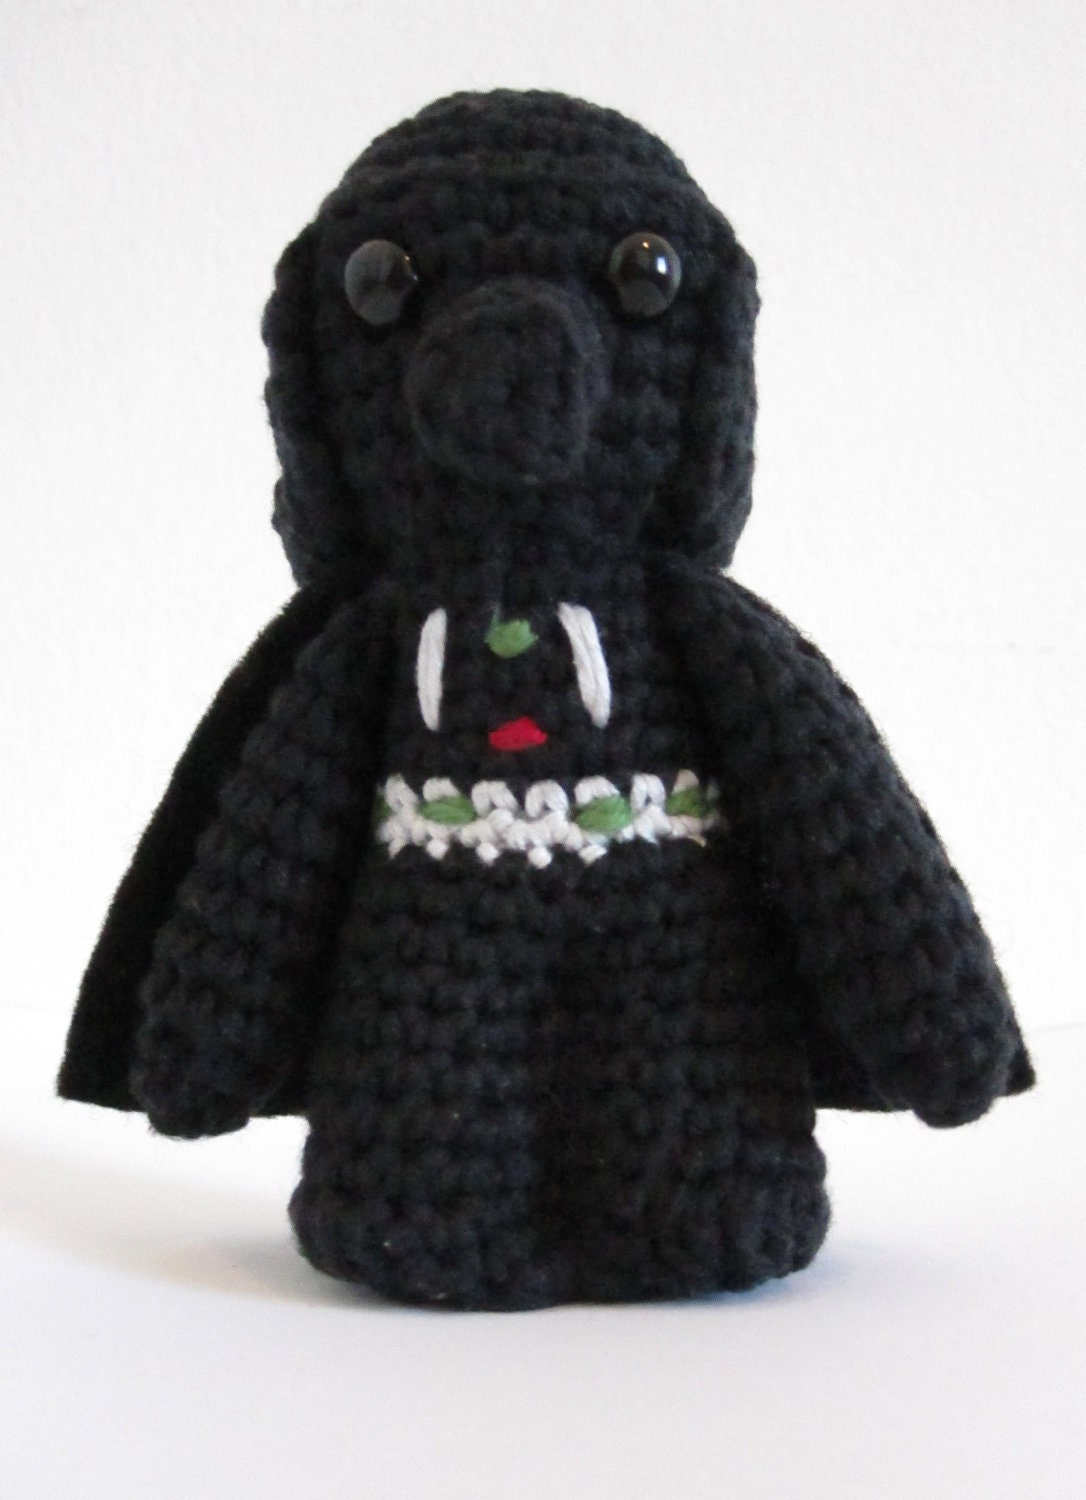 Darth Vader inspired amigurumi. Star wars by TheCottonSheep